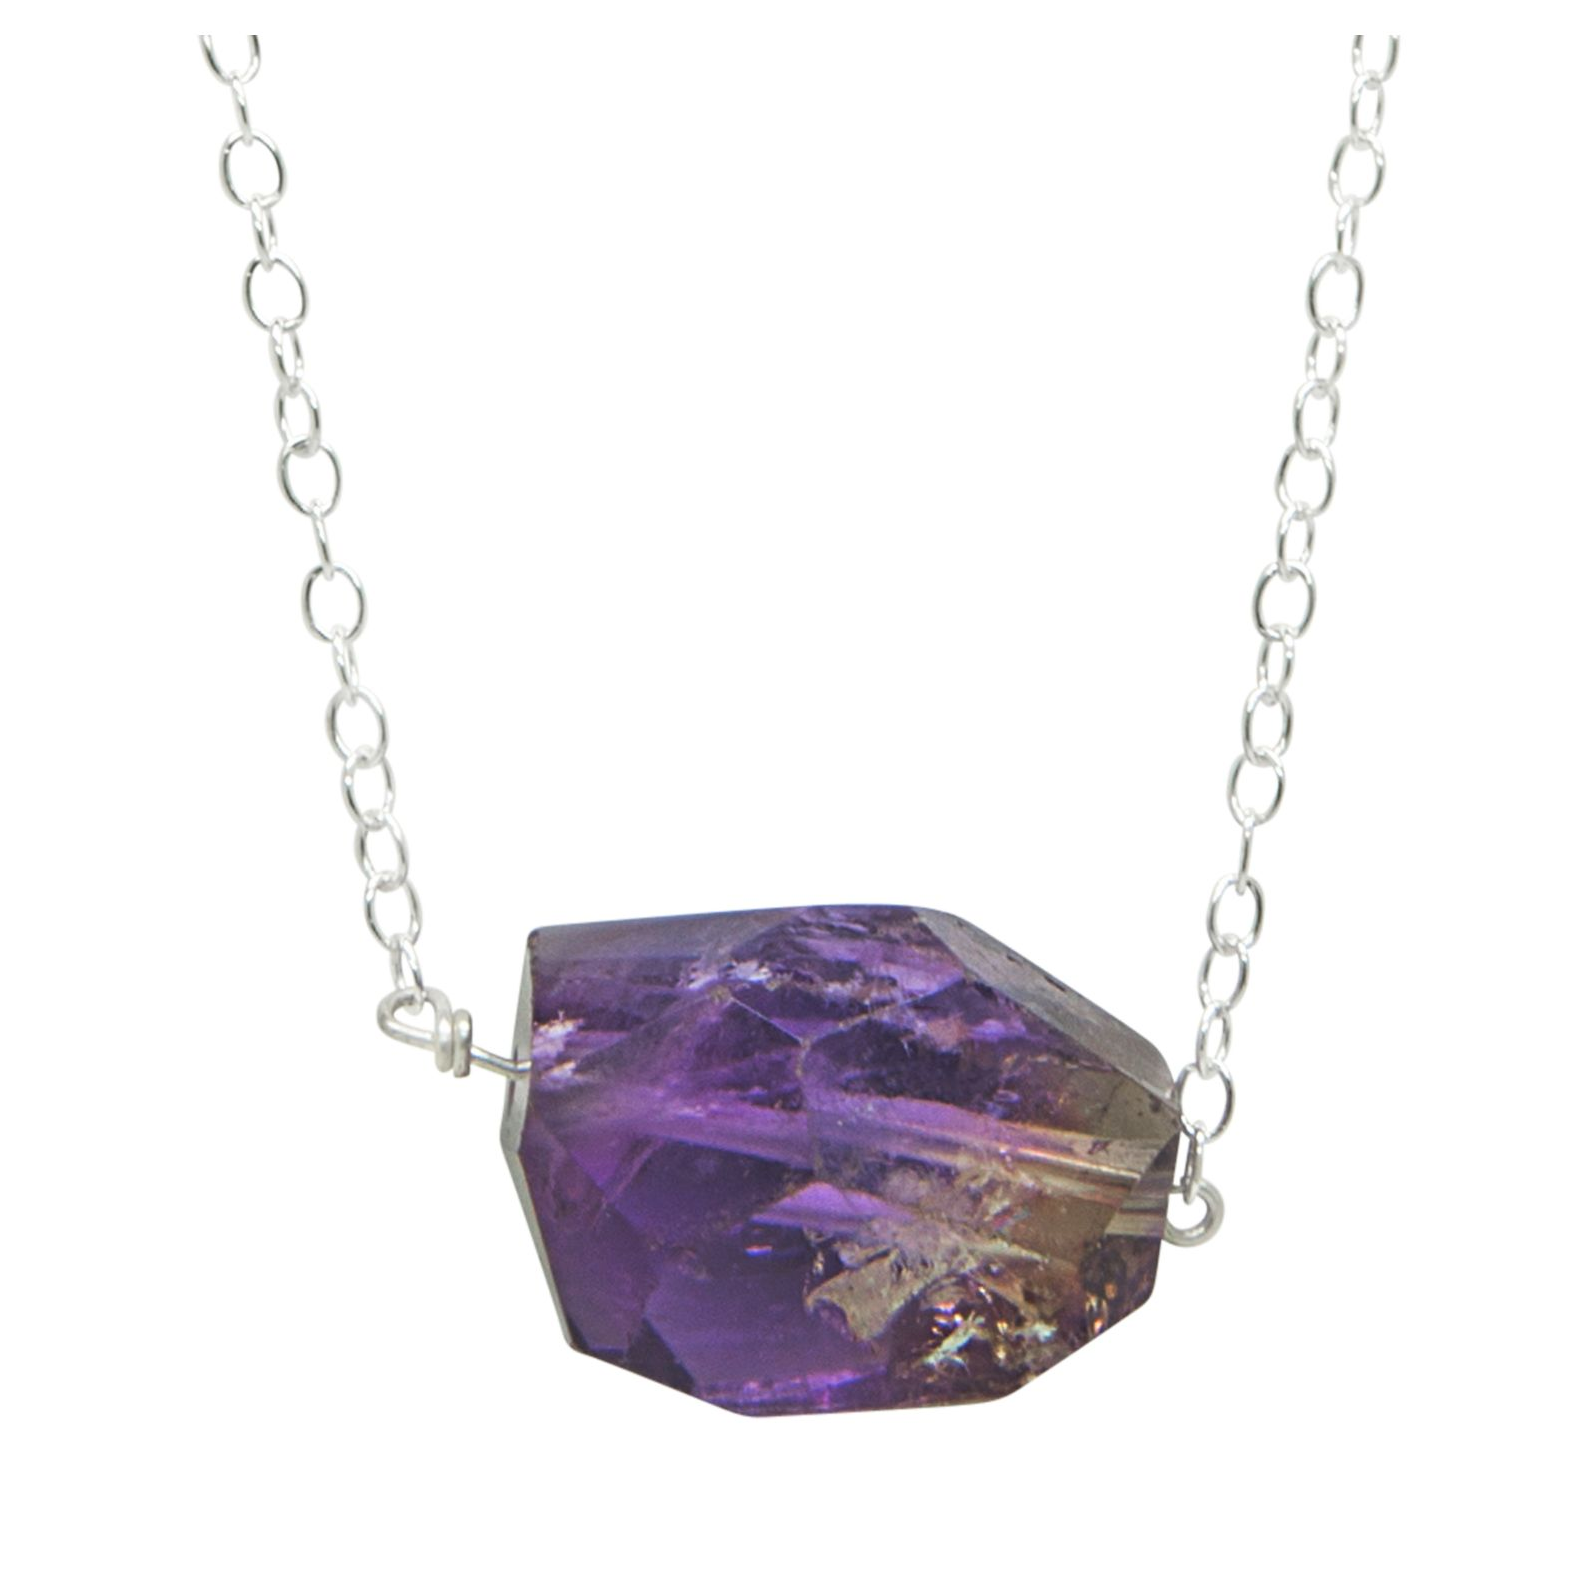 Amethyst rock necklace